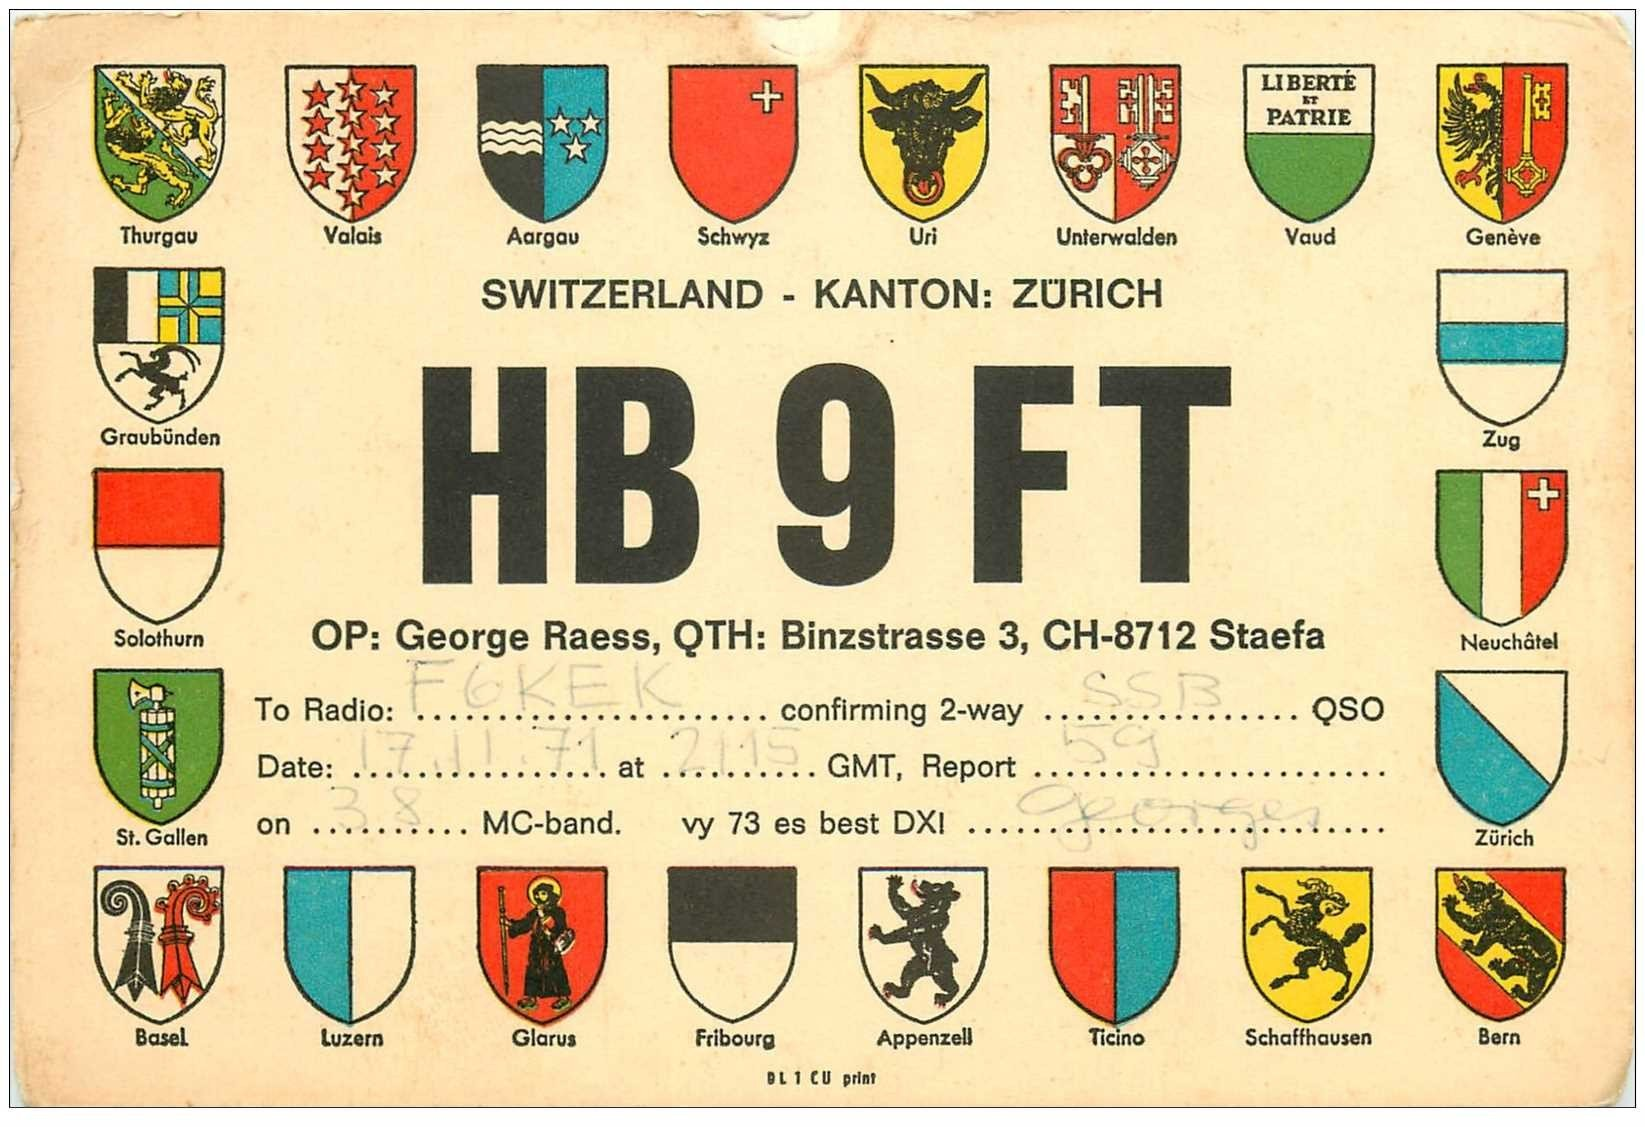 carte postale ancienne CARTE RADIO QSL. Switzerland Zürich 1971